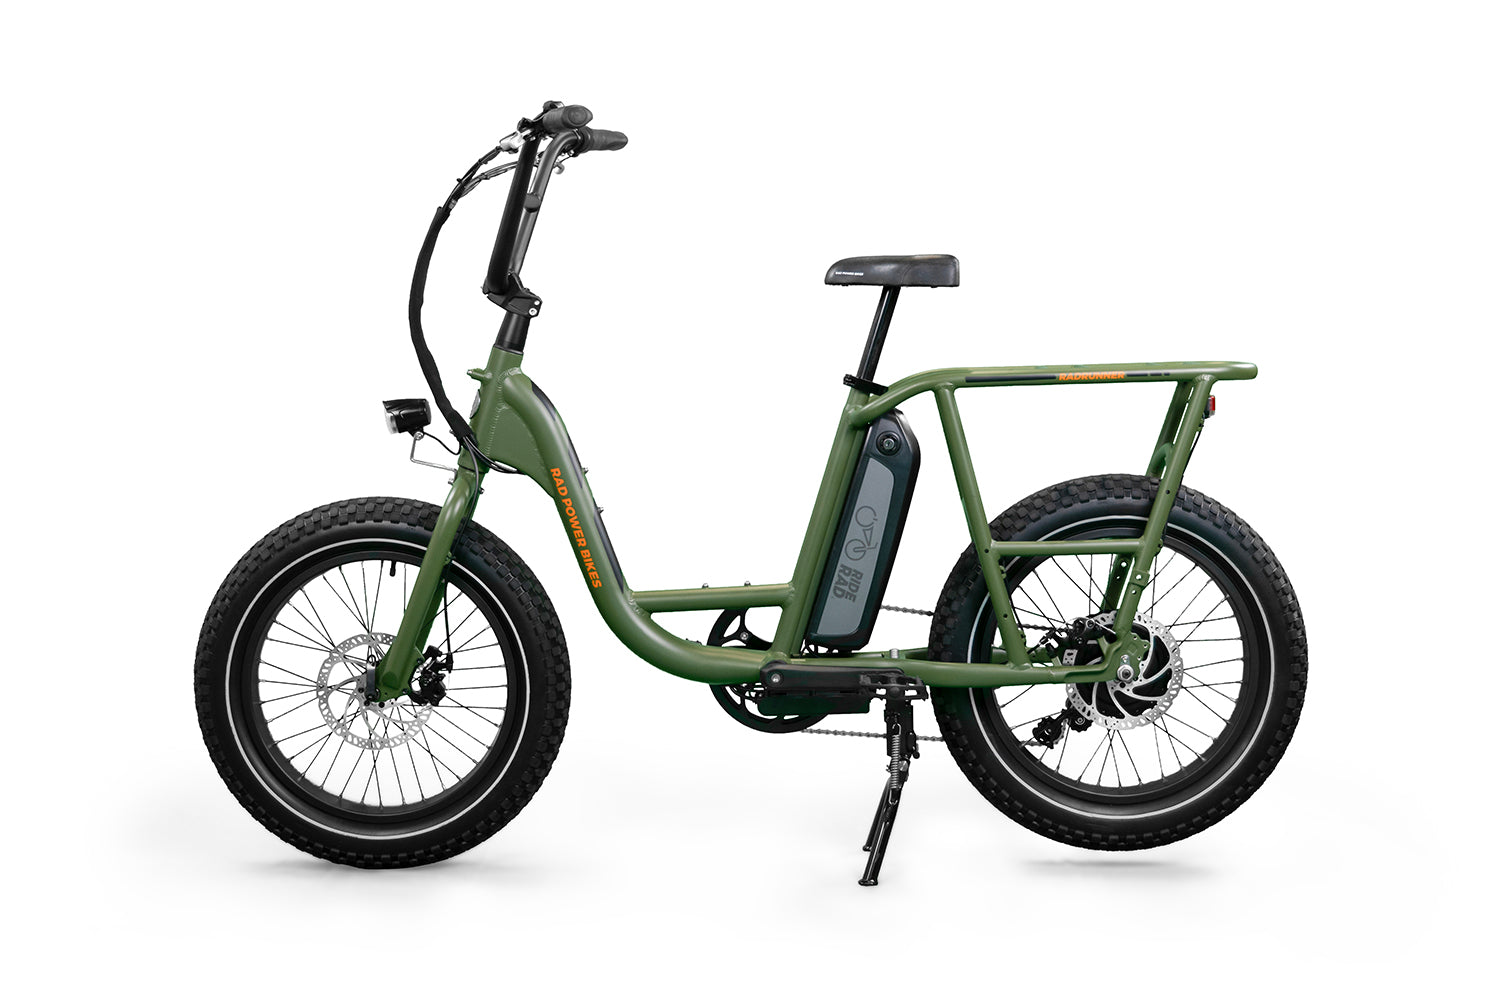 Green Handlebar Mount Scooter and Bicycle Bell